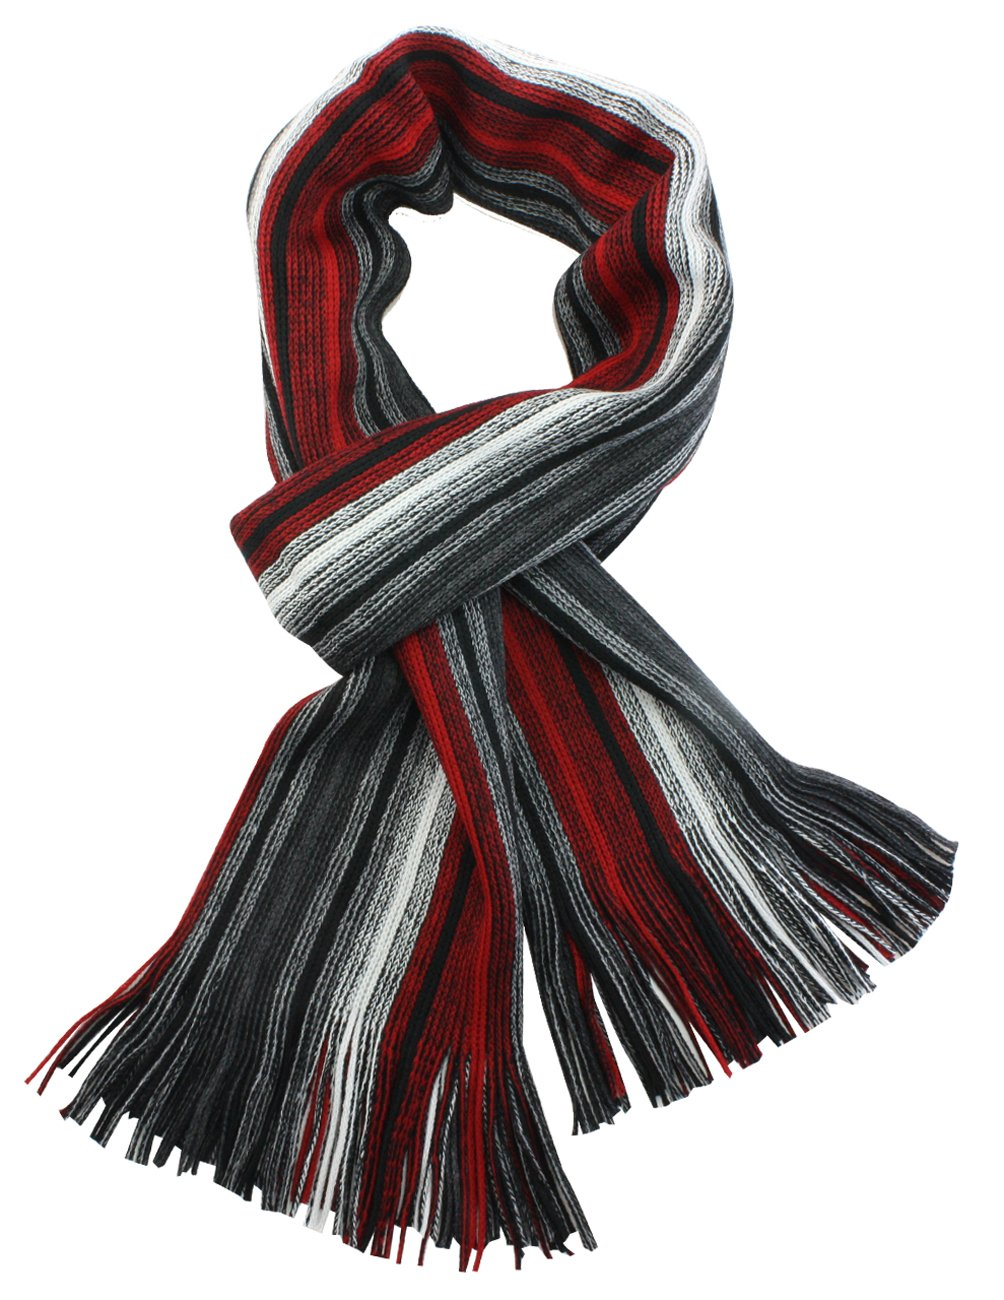 Dahlia Men's 100% Fine Acrylic Colorful Striped Knit Long Scarf - Red